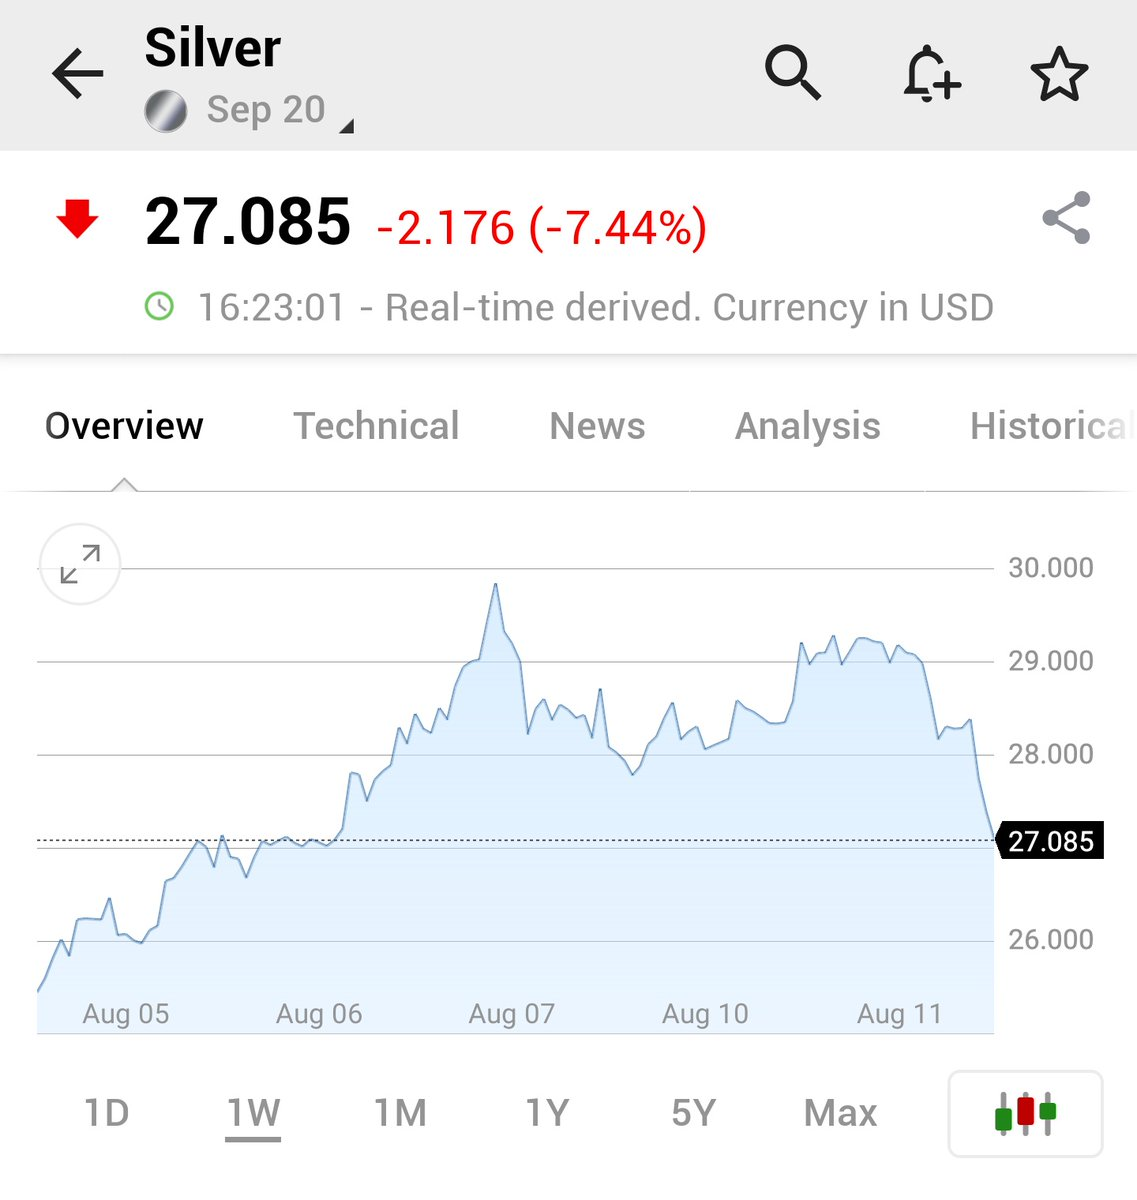 Investing Com A Twitter Silver Extends Losses Last Down More Than 7 As Prices Retreat Further From 7 Year High Reached Last Week Slv